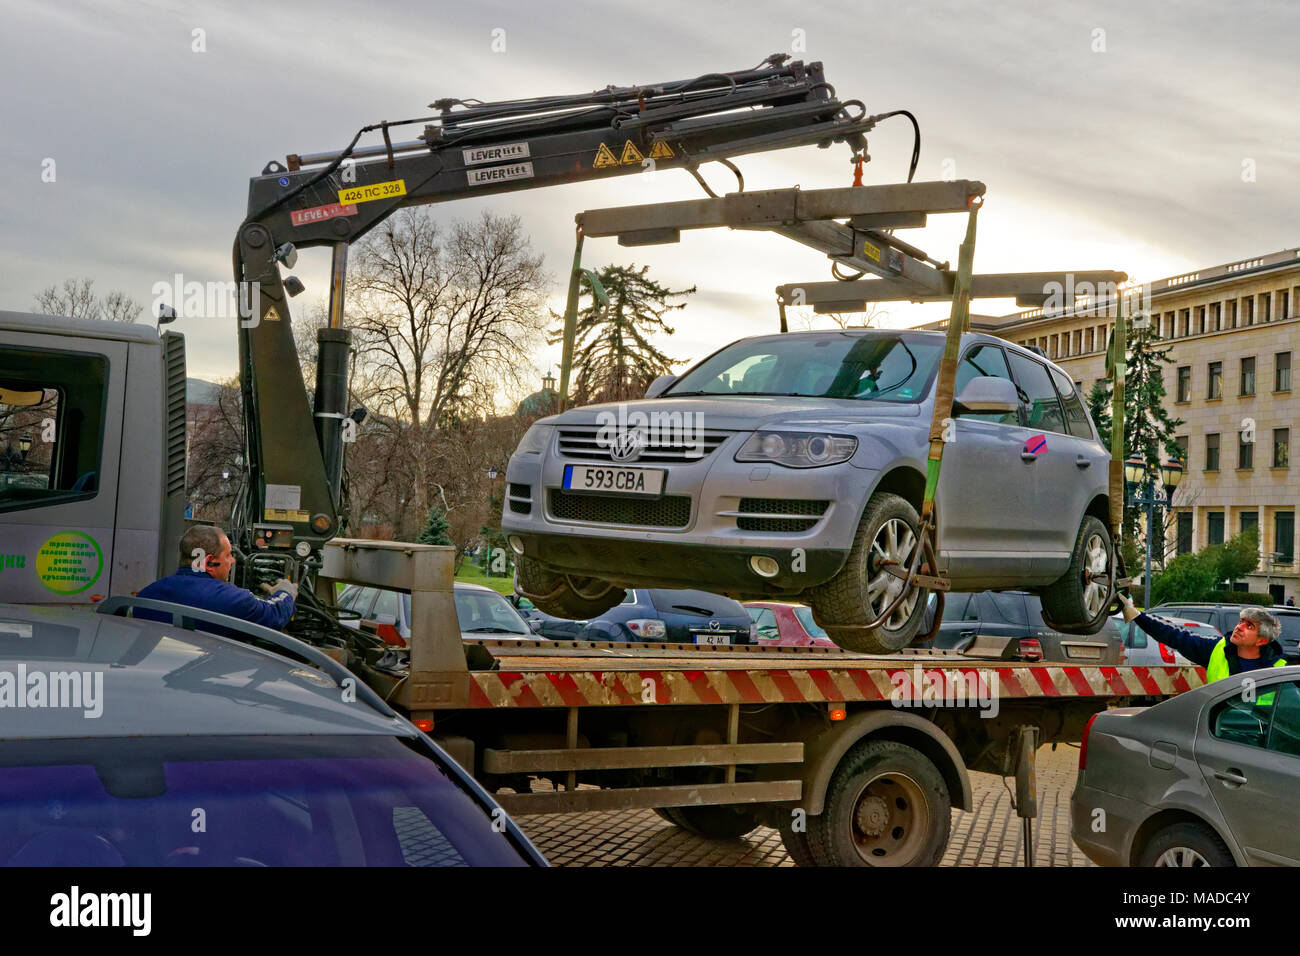 Illegally parked car being removed and impounded.( Registration number has been changed and randomised. EU plate) - Stock Image